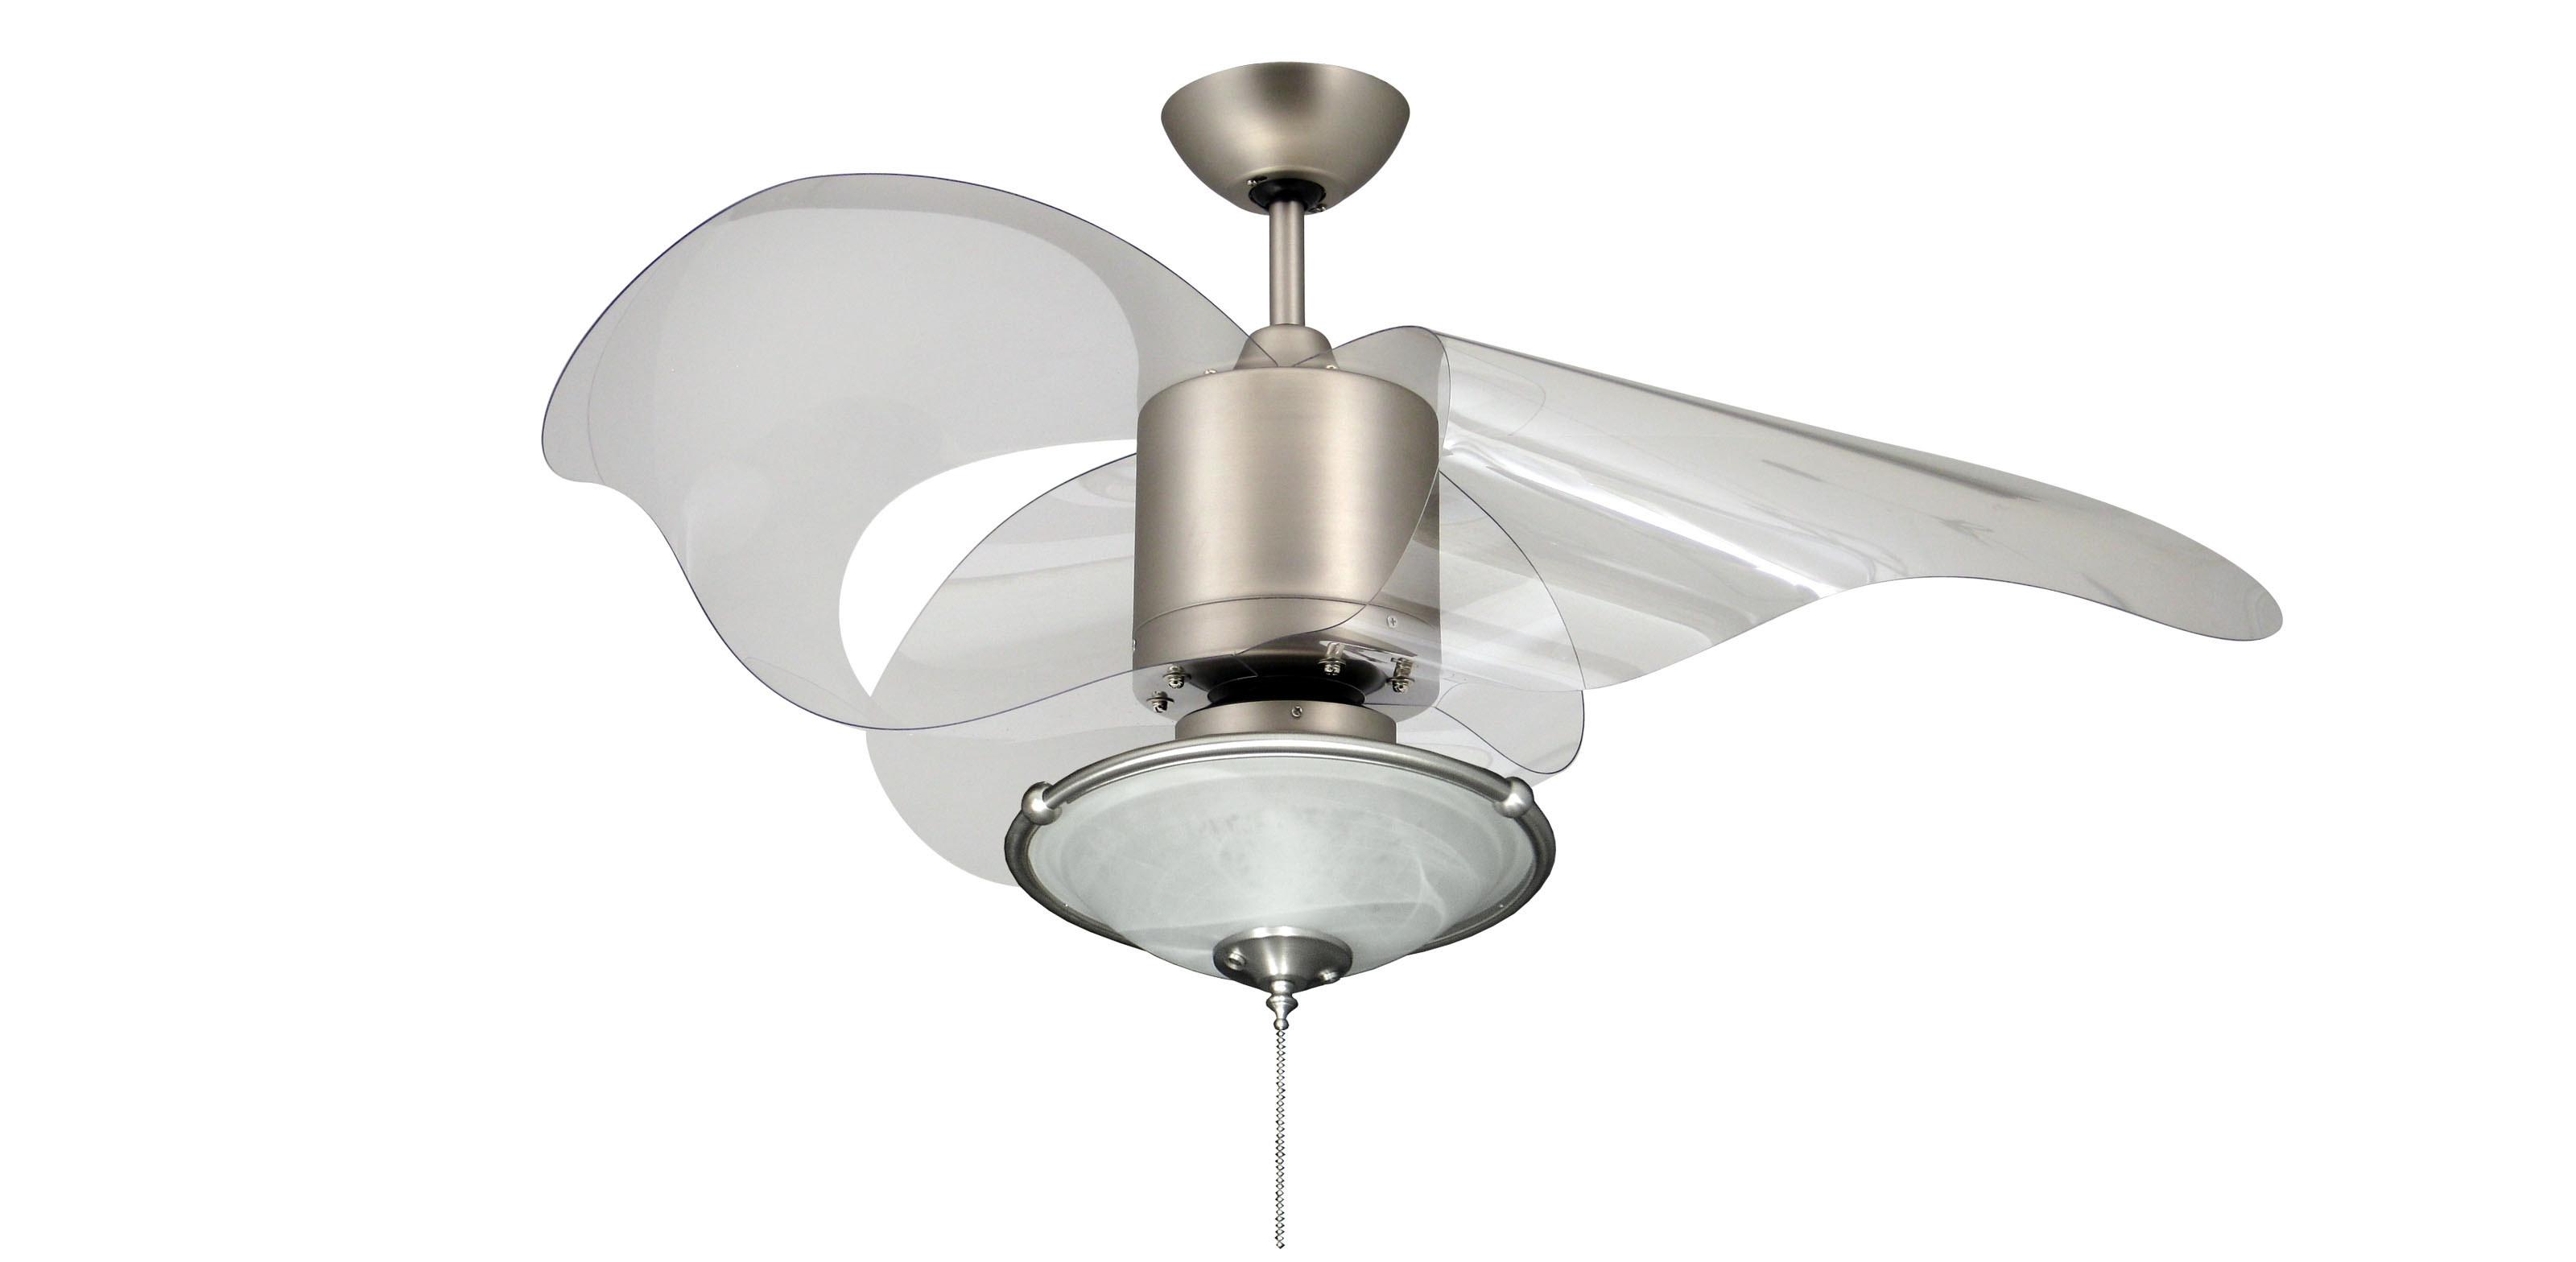 Famous 24 Inch Outdoor Ceiling Fans With Light Intended For Ceiling: Extraordinary Ceiling Fans For Small Rooms Mini Ceiling (View 7 of 20)